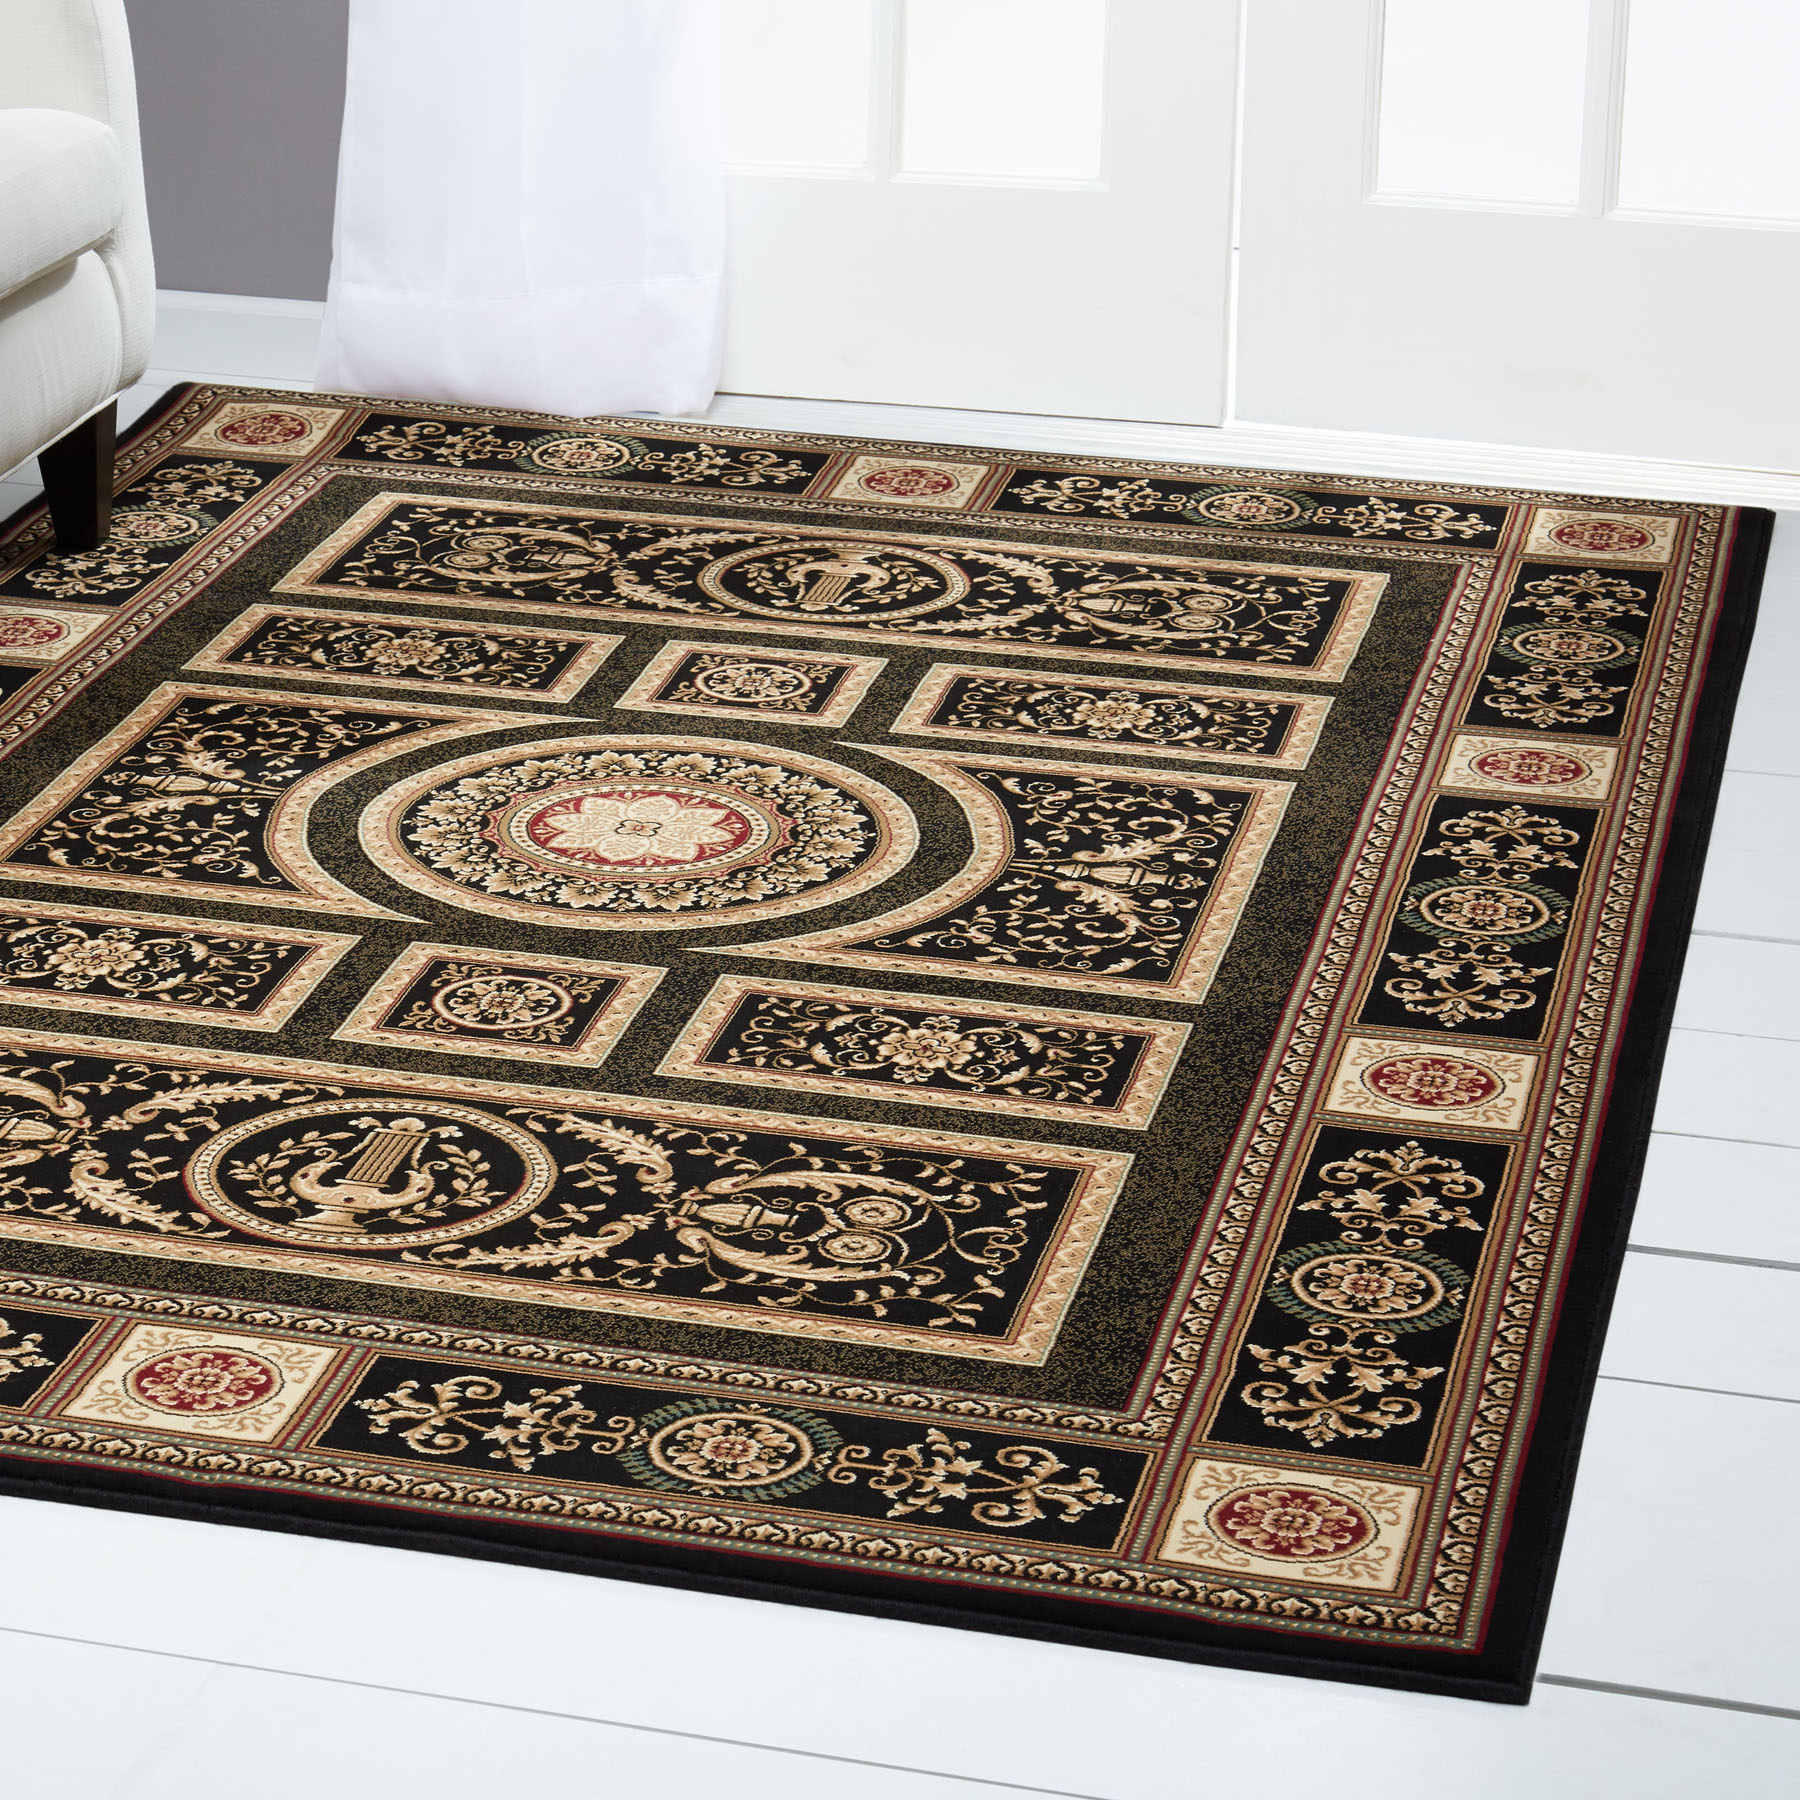 Black Bordered Area Rug Traditional Persian Oriental